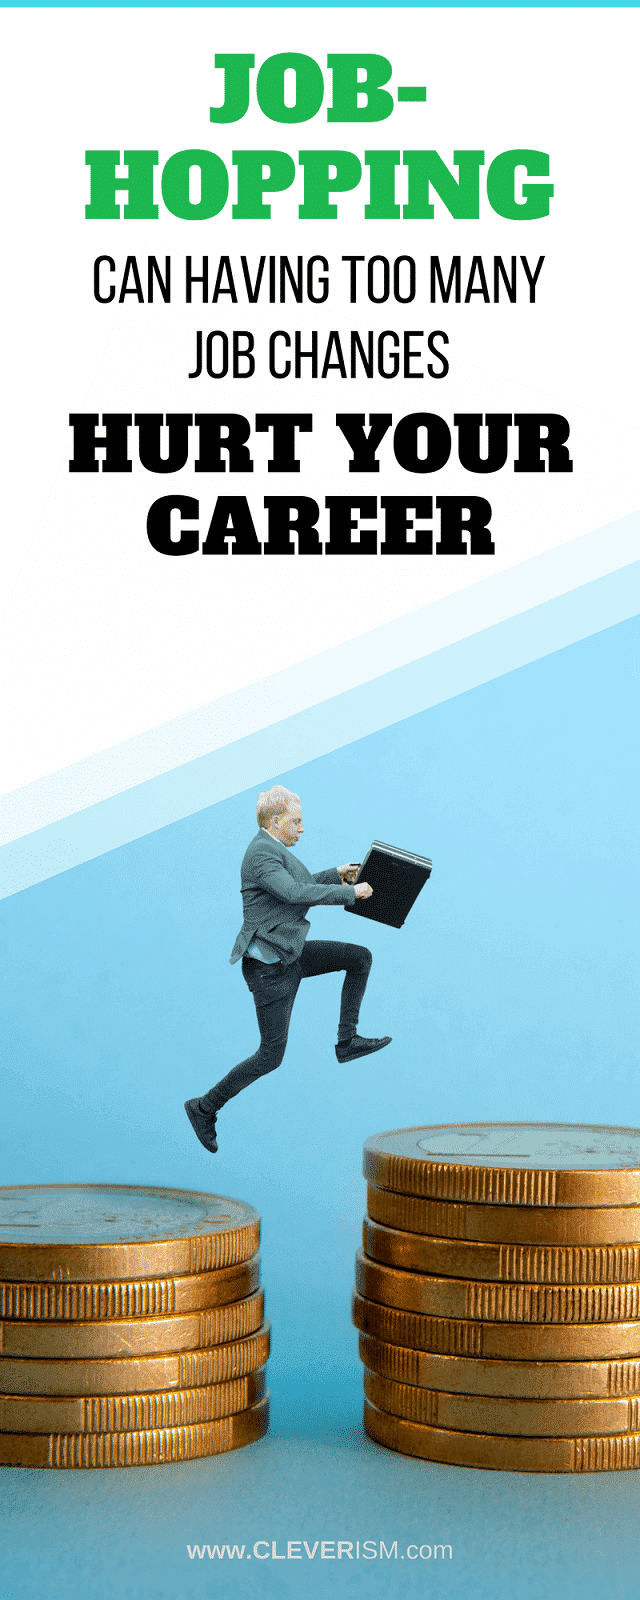 Job-Hopping: Can Having Too Many Job Changes Hurt Your